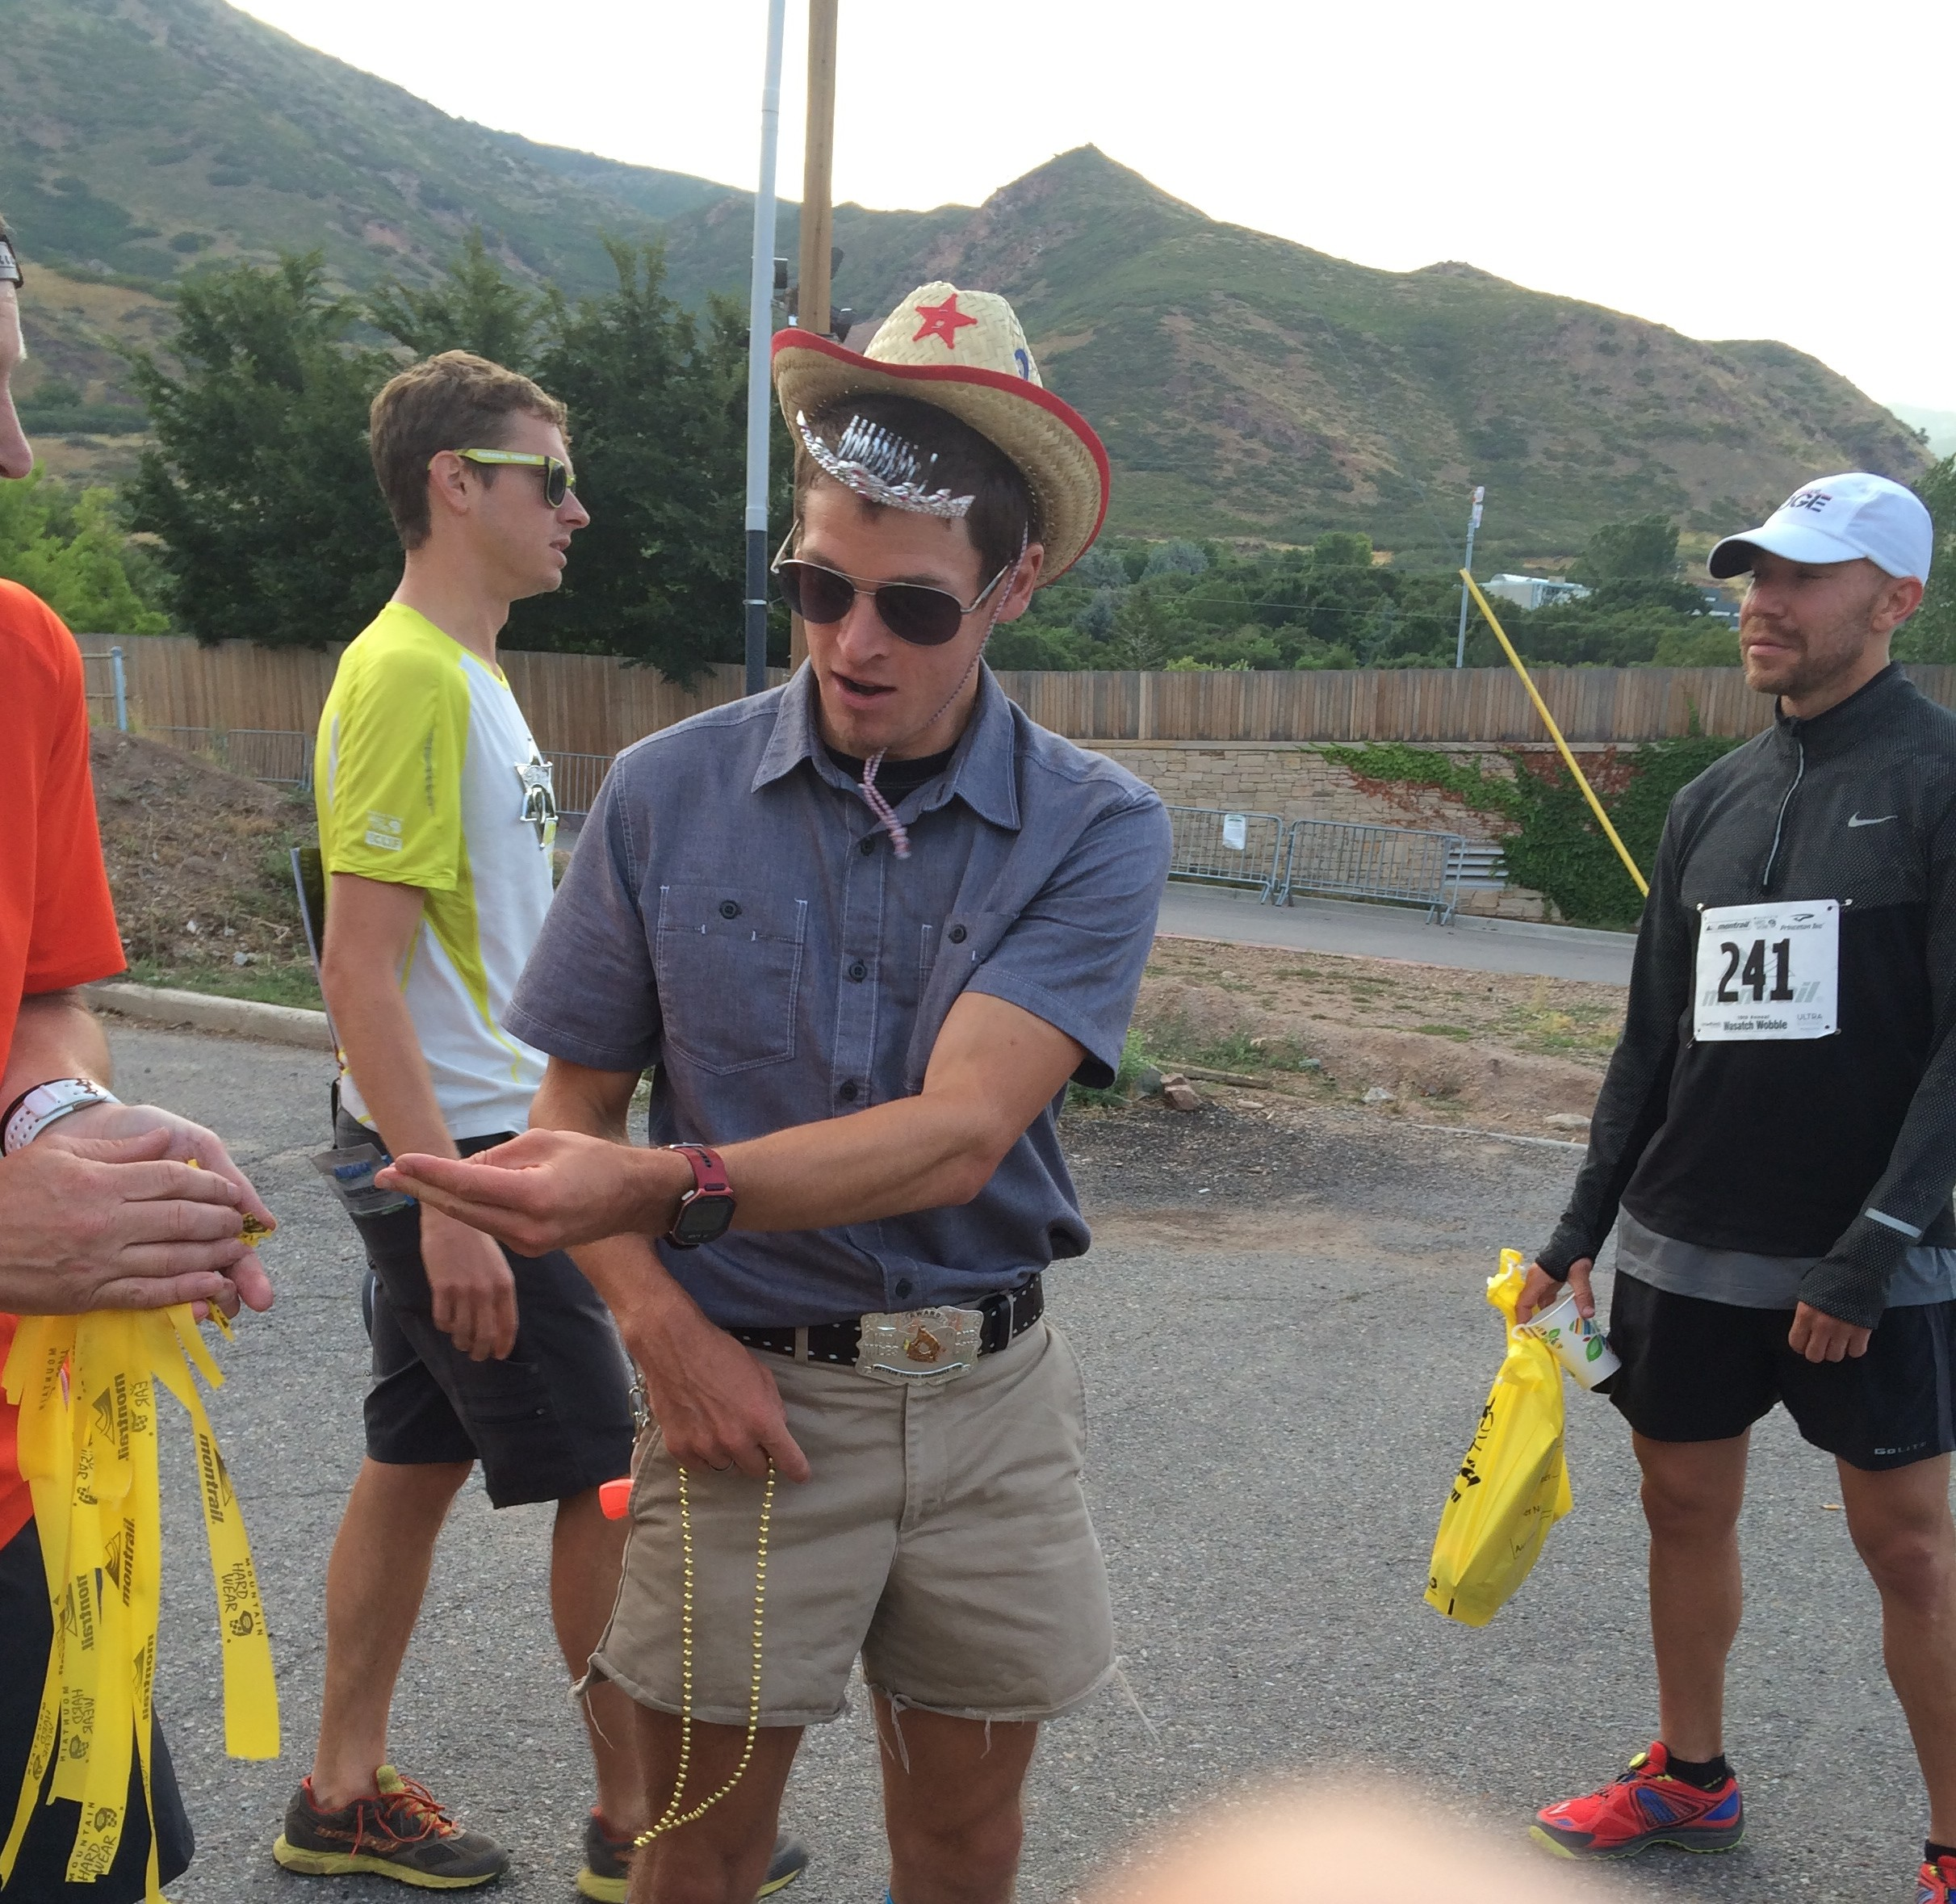 Max at the Wasatch Wobble 5k on Fri morning. Nice outfit, cowboy.